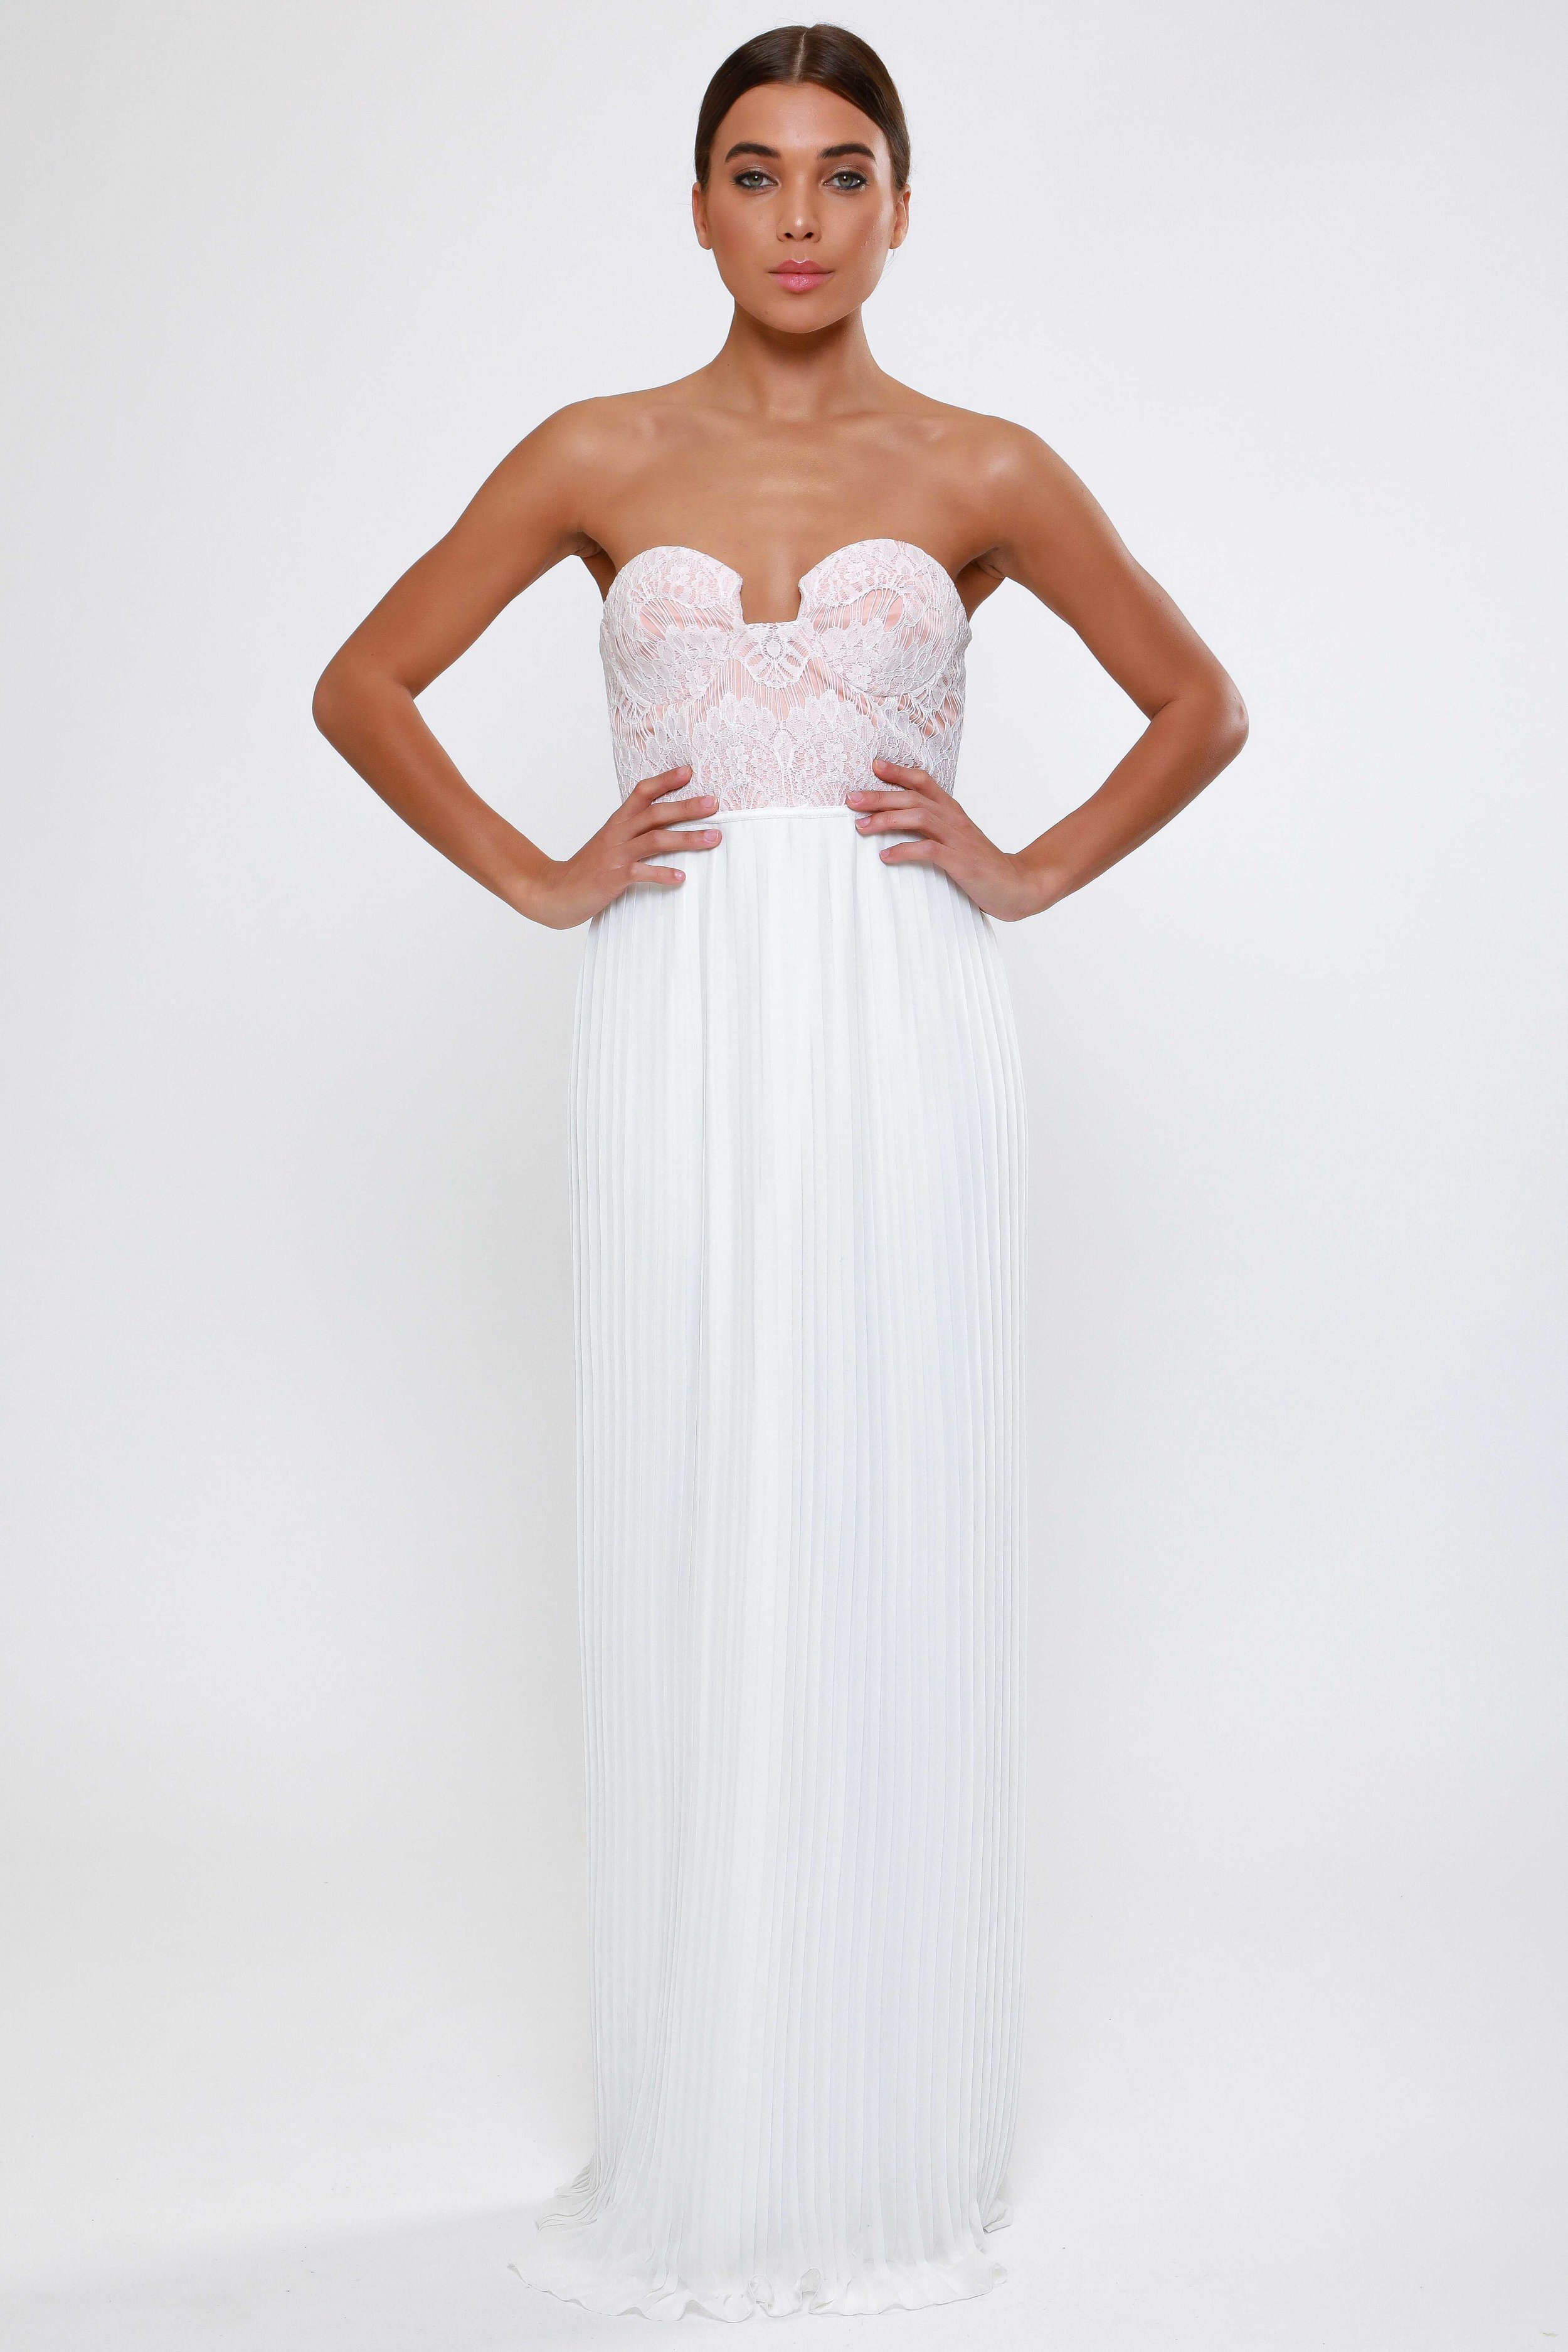 Strapless Bust Cup Lace  Pleated Maxi Dress   £59.00